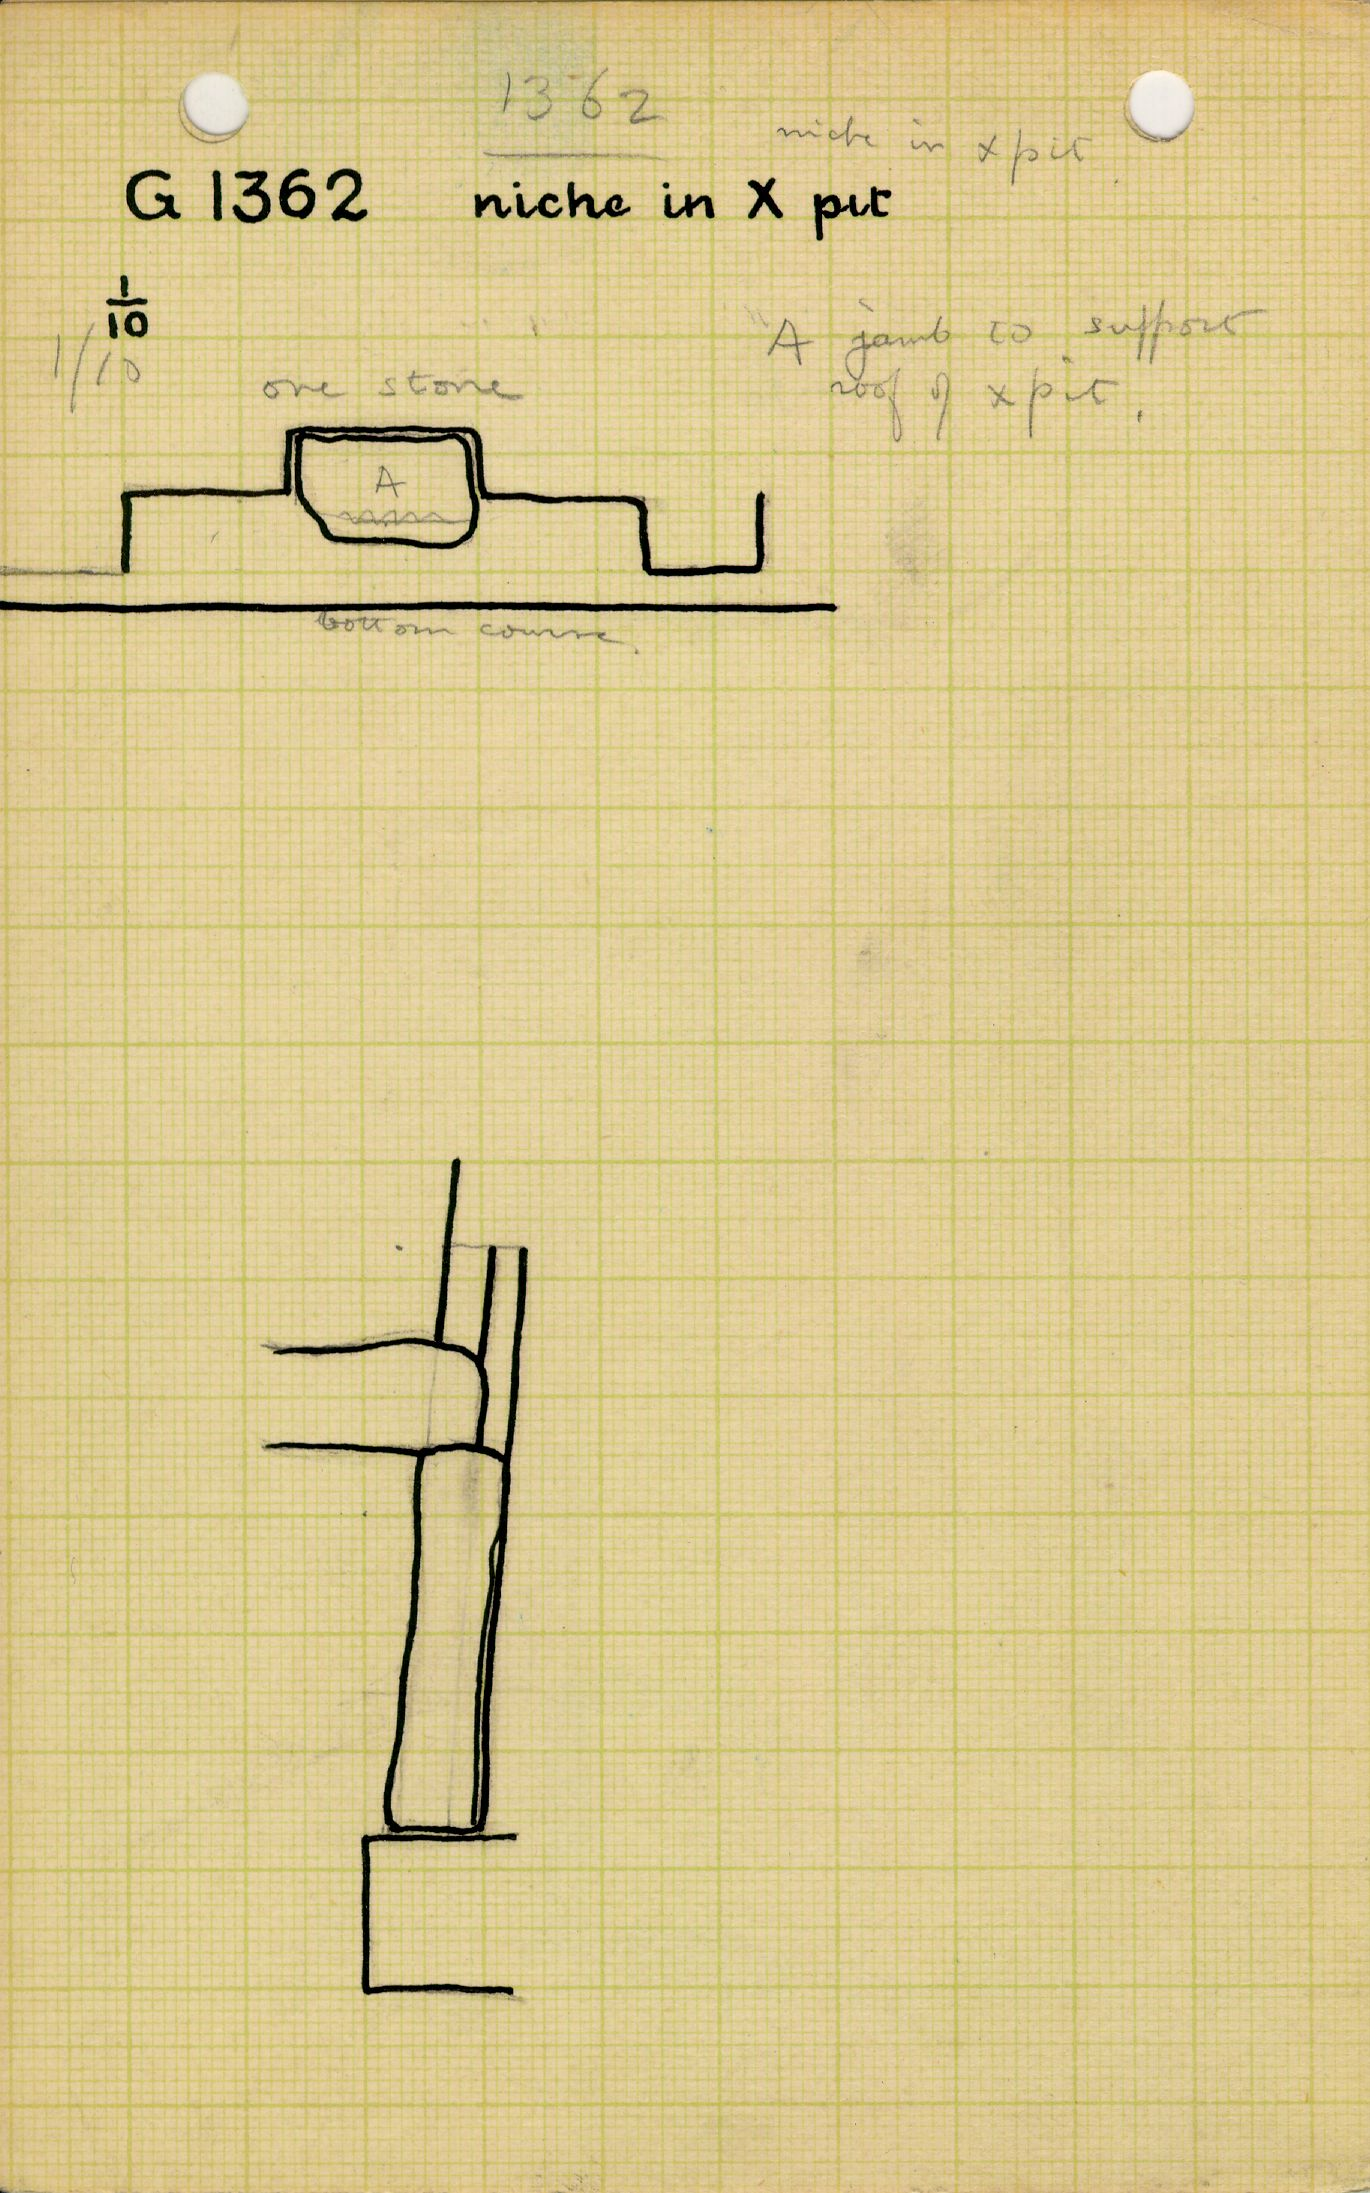 Maps and plans: G 1362, Shaft X